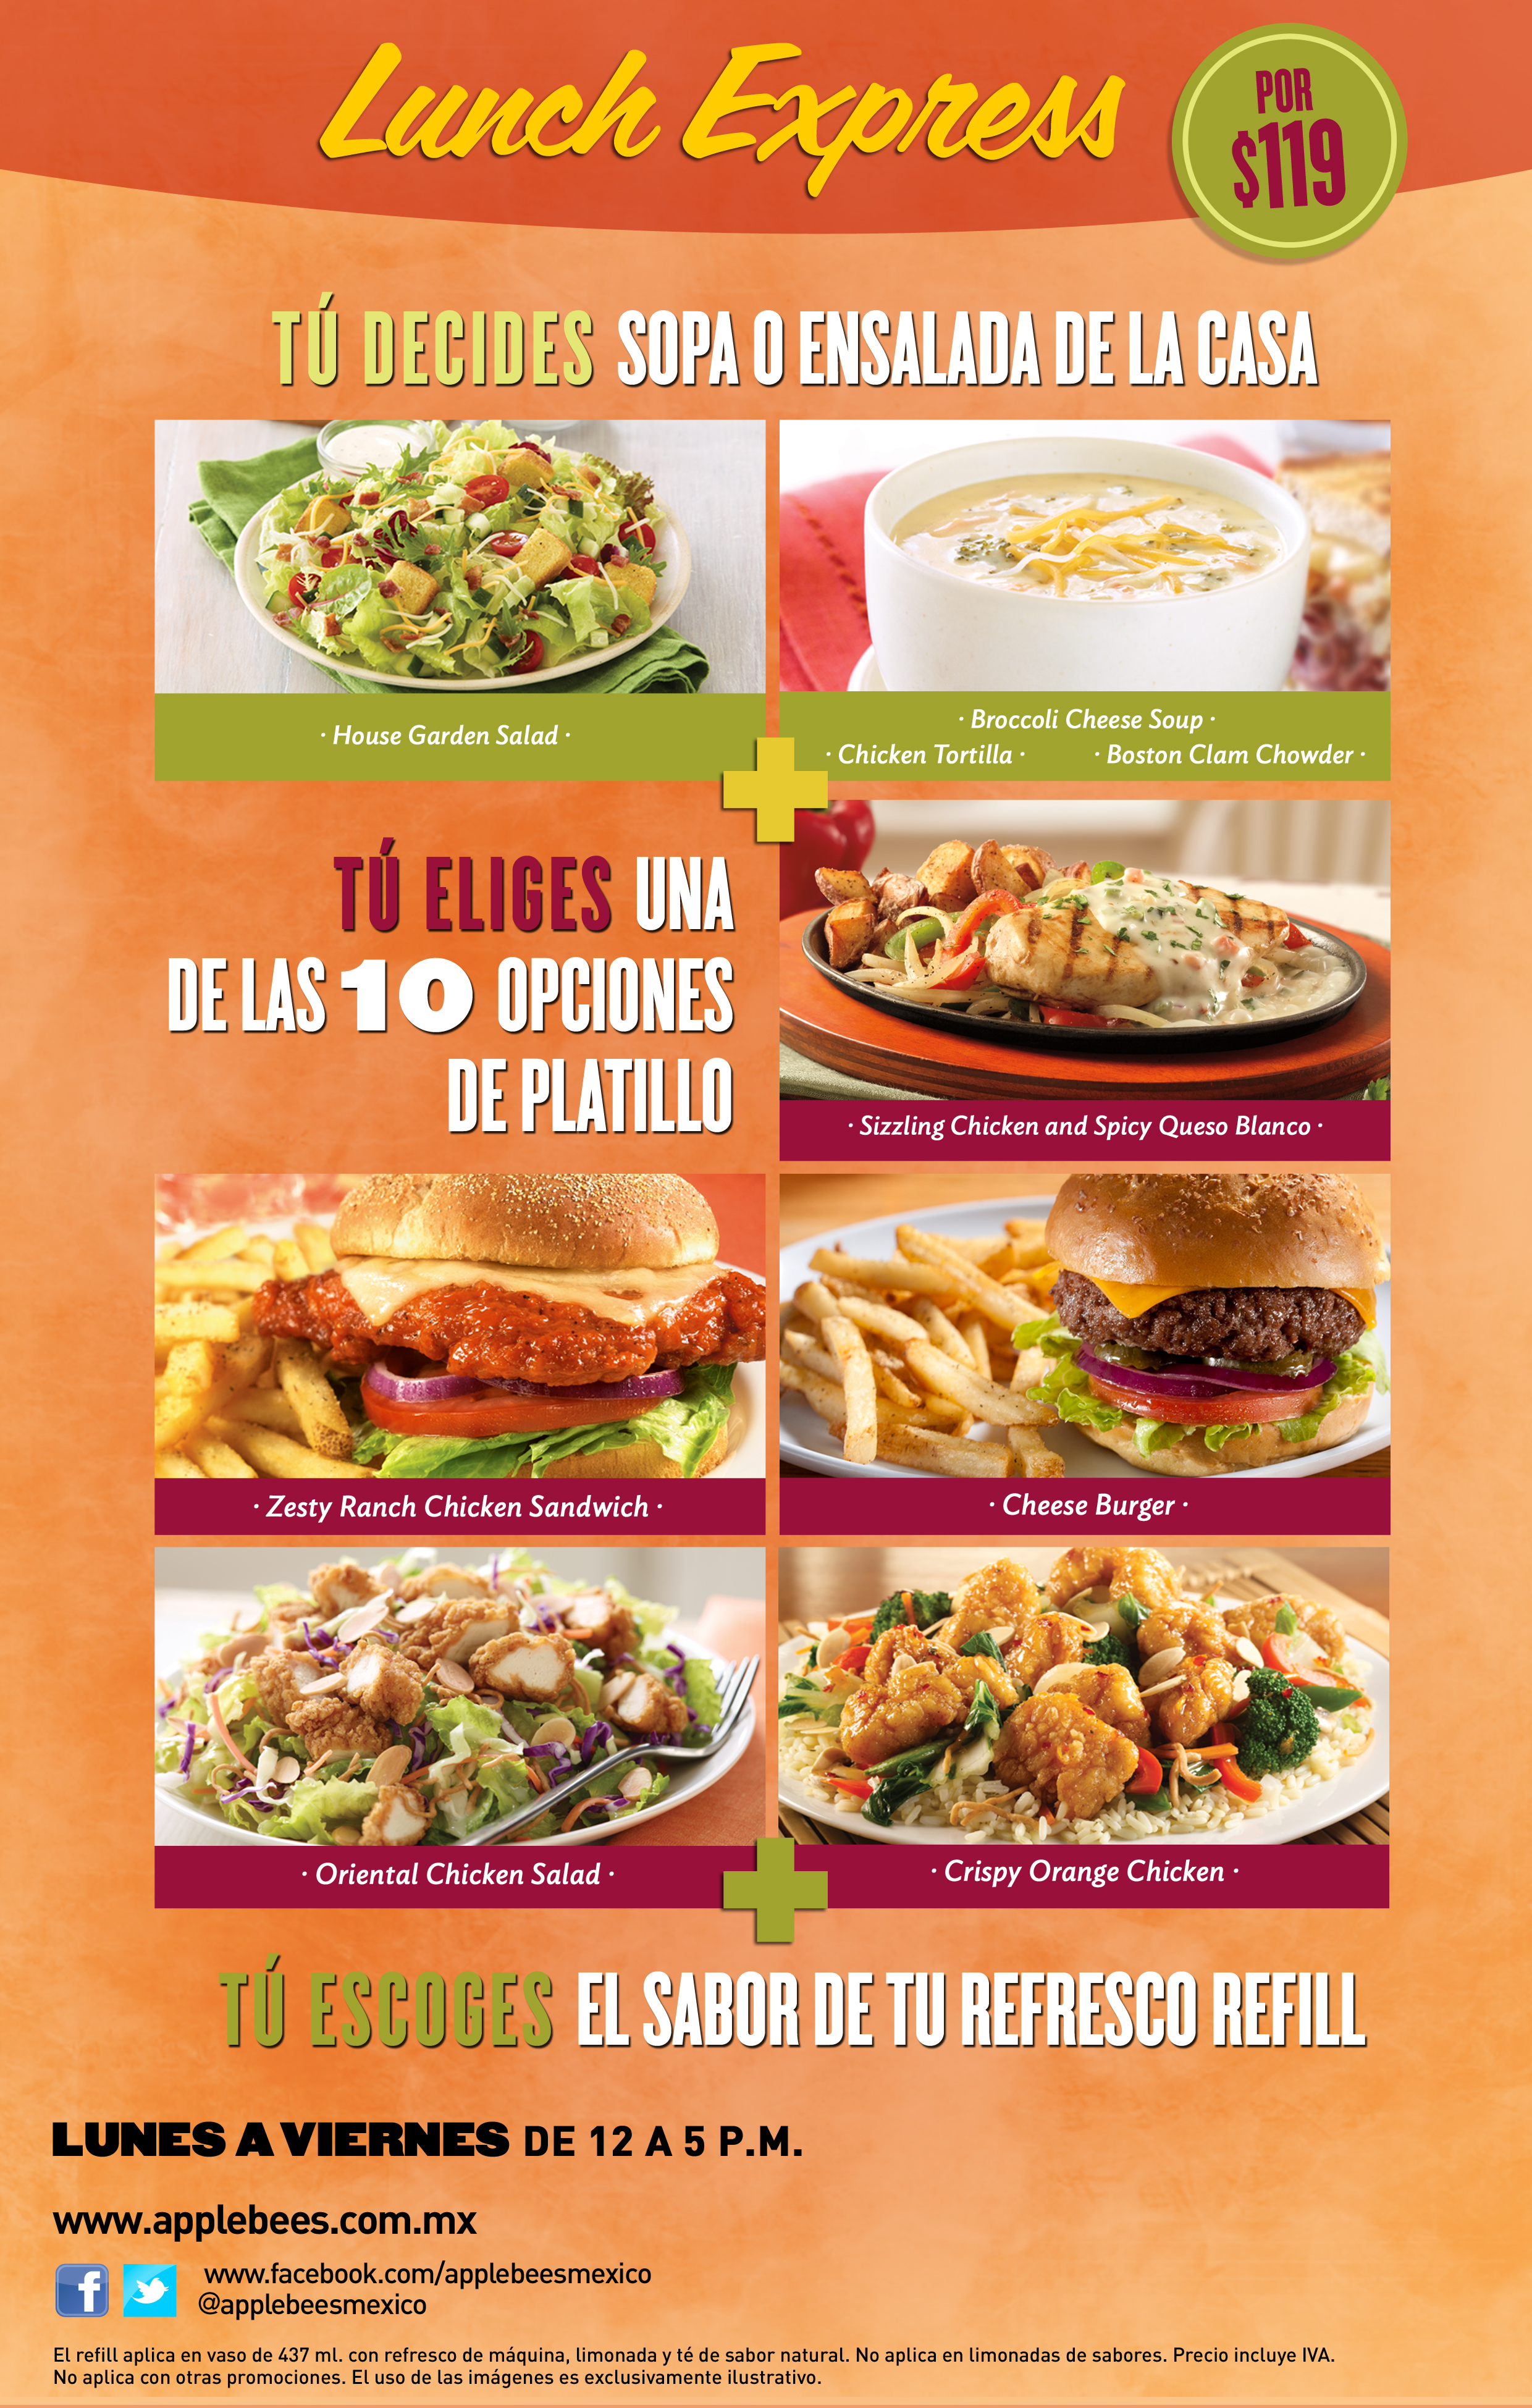 Applebee's Menu prices. The full Applebees menu, including the Applebees Carside To Go Menu, 20 for 20$ and 2 for 25$ Dinner, Drinks & Lunch menu & other specials.